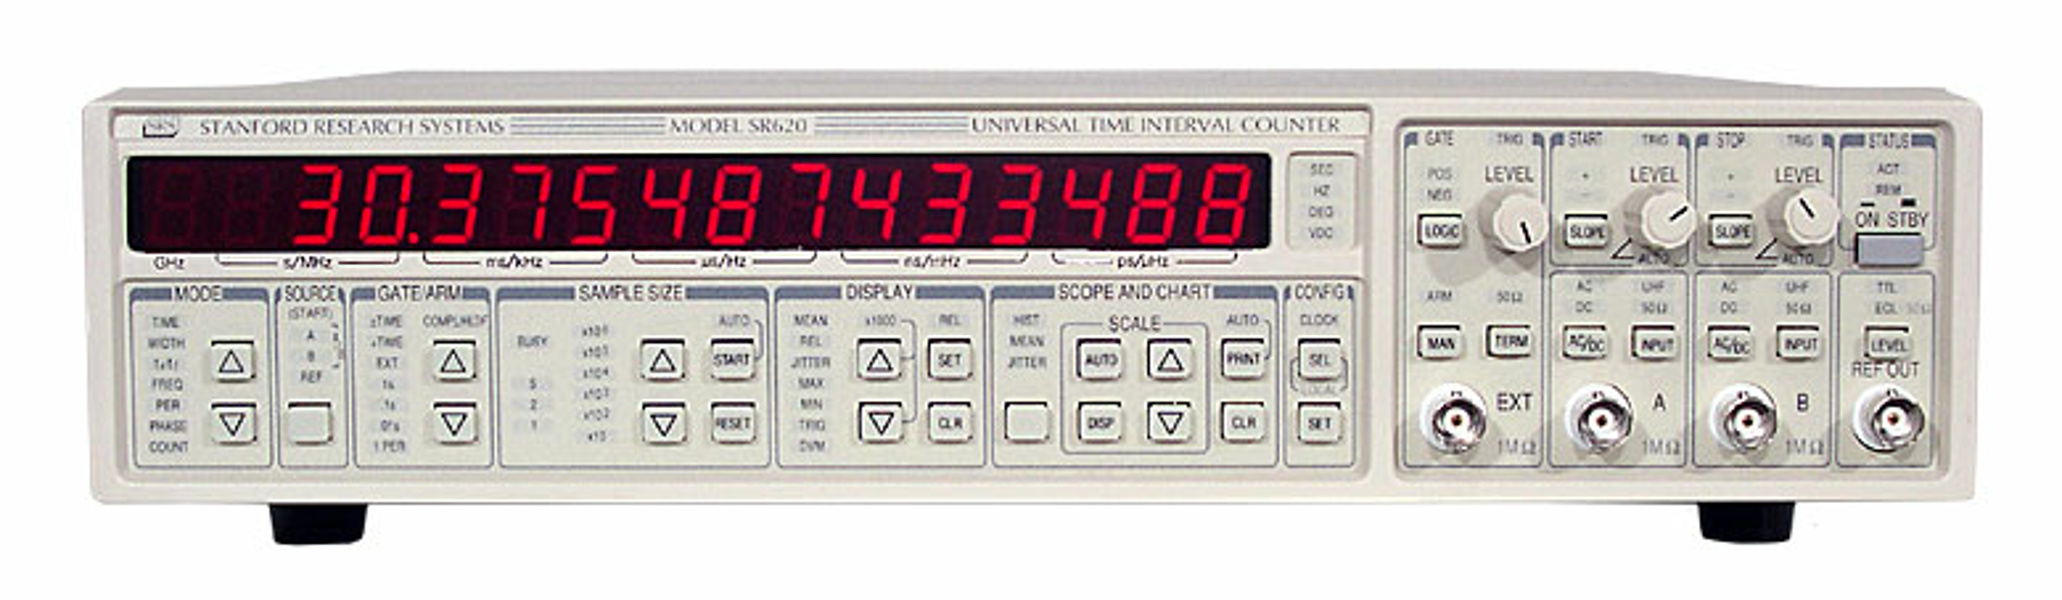 SRS SR620 — Time interval and frequency counter